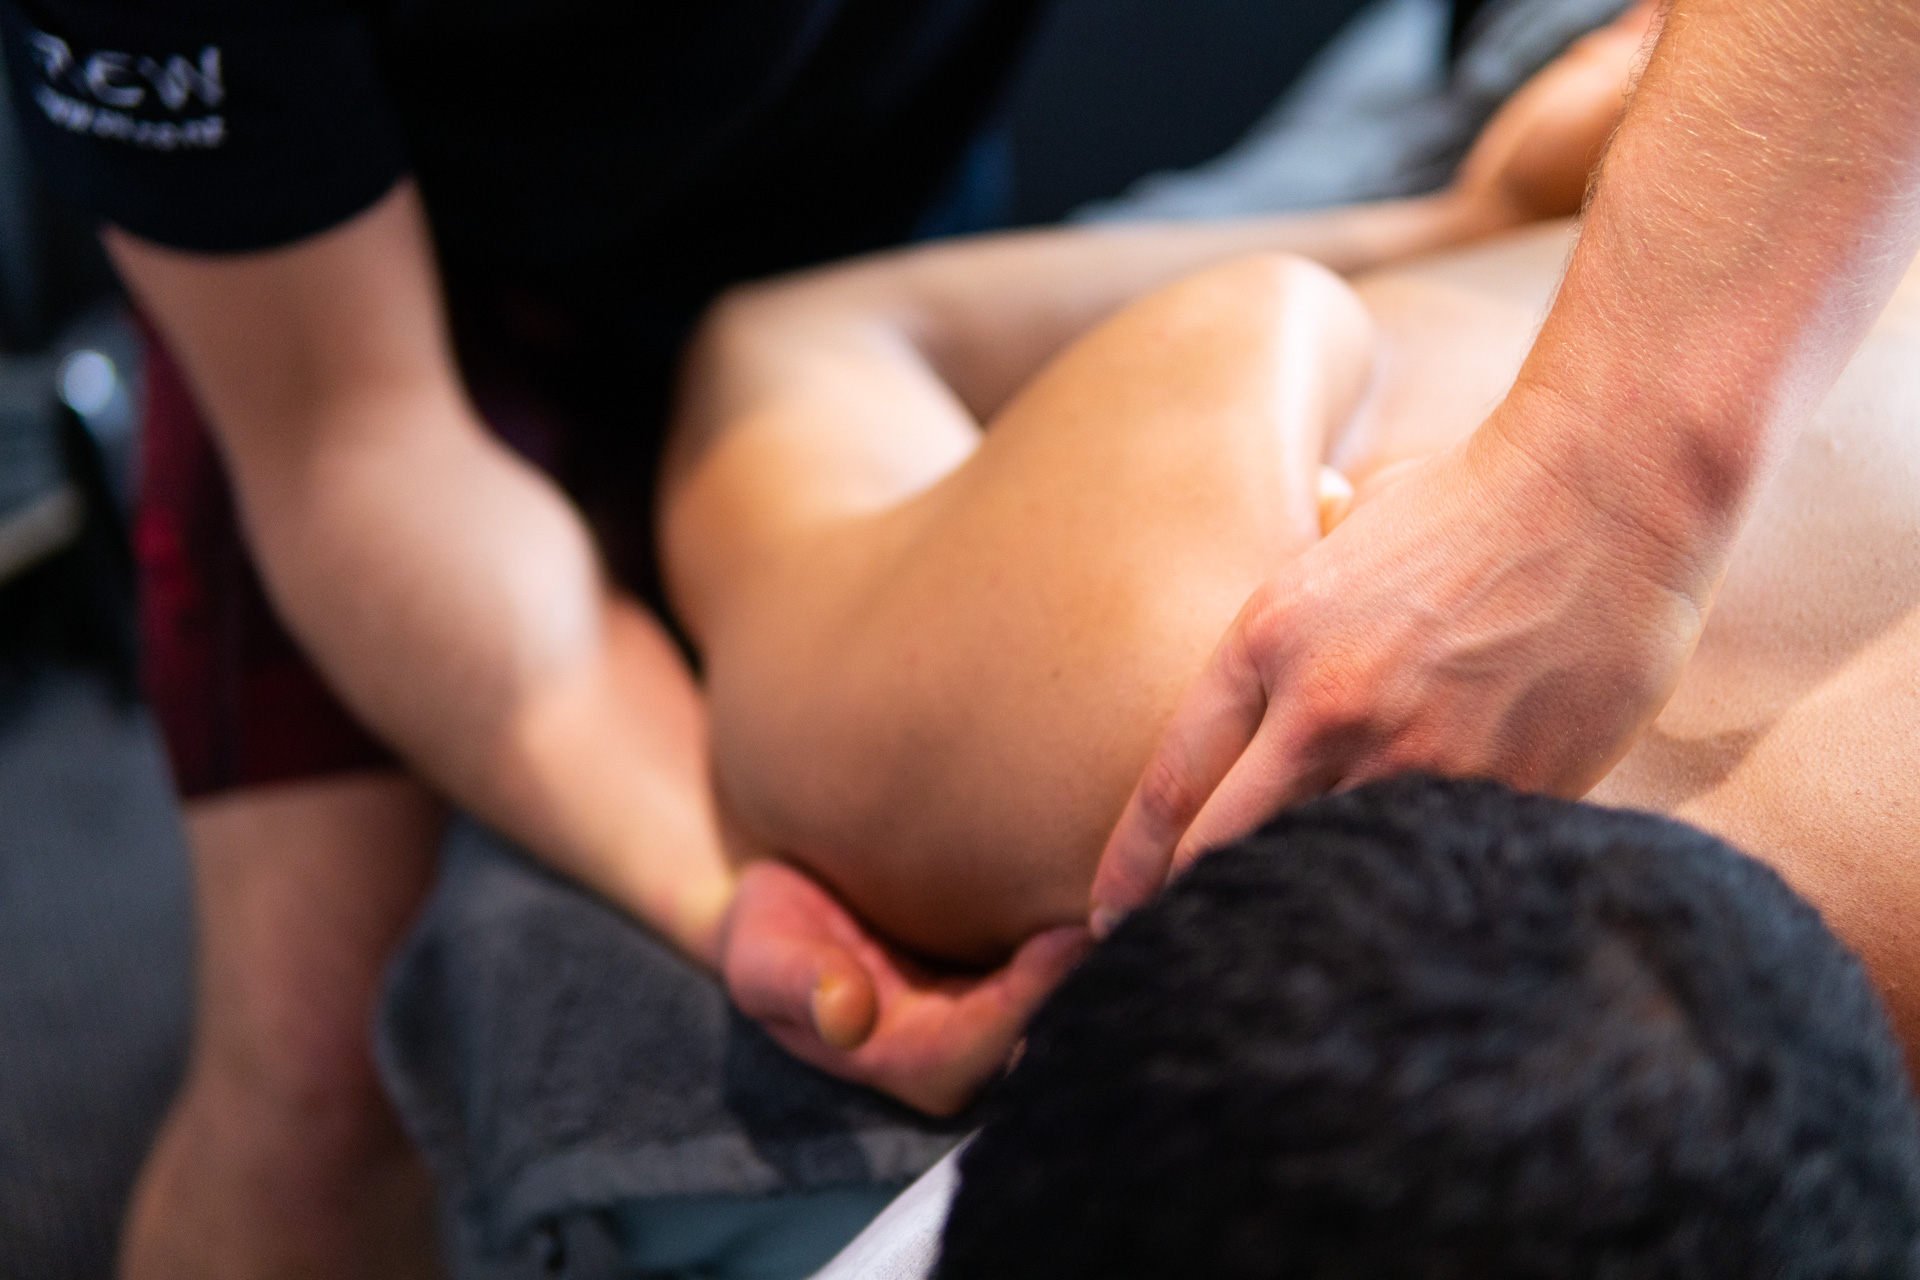 Massage and Manual Therapy    Free your motion.   Initial (75 Minutes): $100  60 Minute Session: $80  45 Minute Session: $65